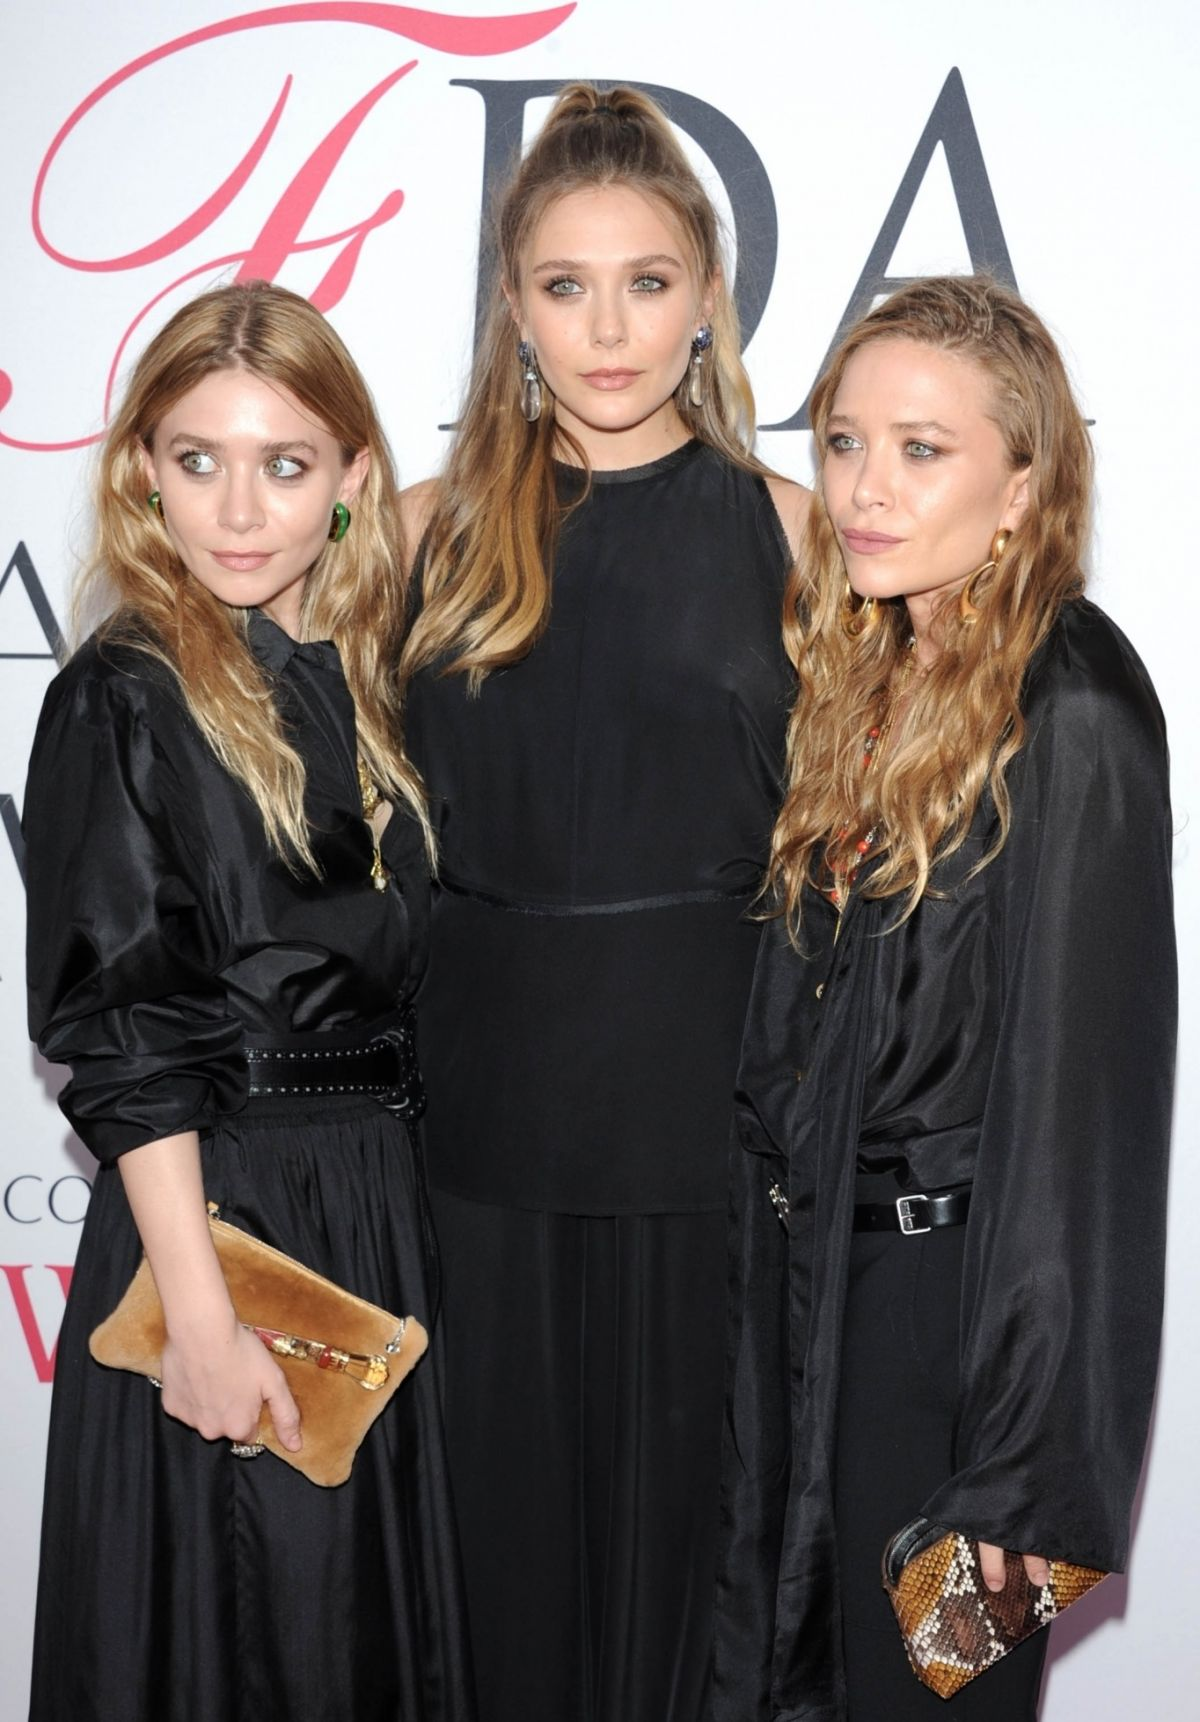 ELIZABETH, MARY-KATE and ASHLEY OLSEN at CFDA Fashion Awards in New York 06/06/2016